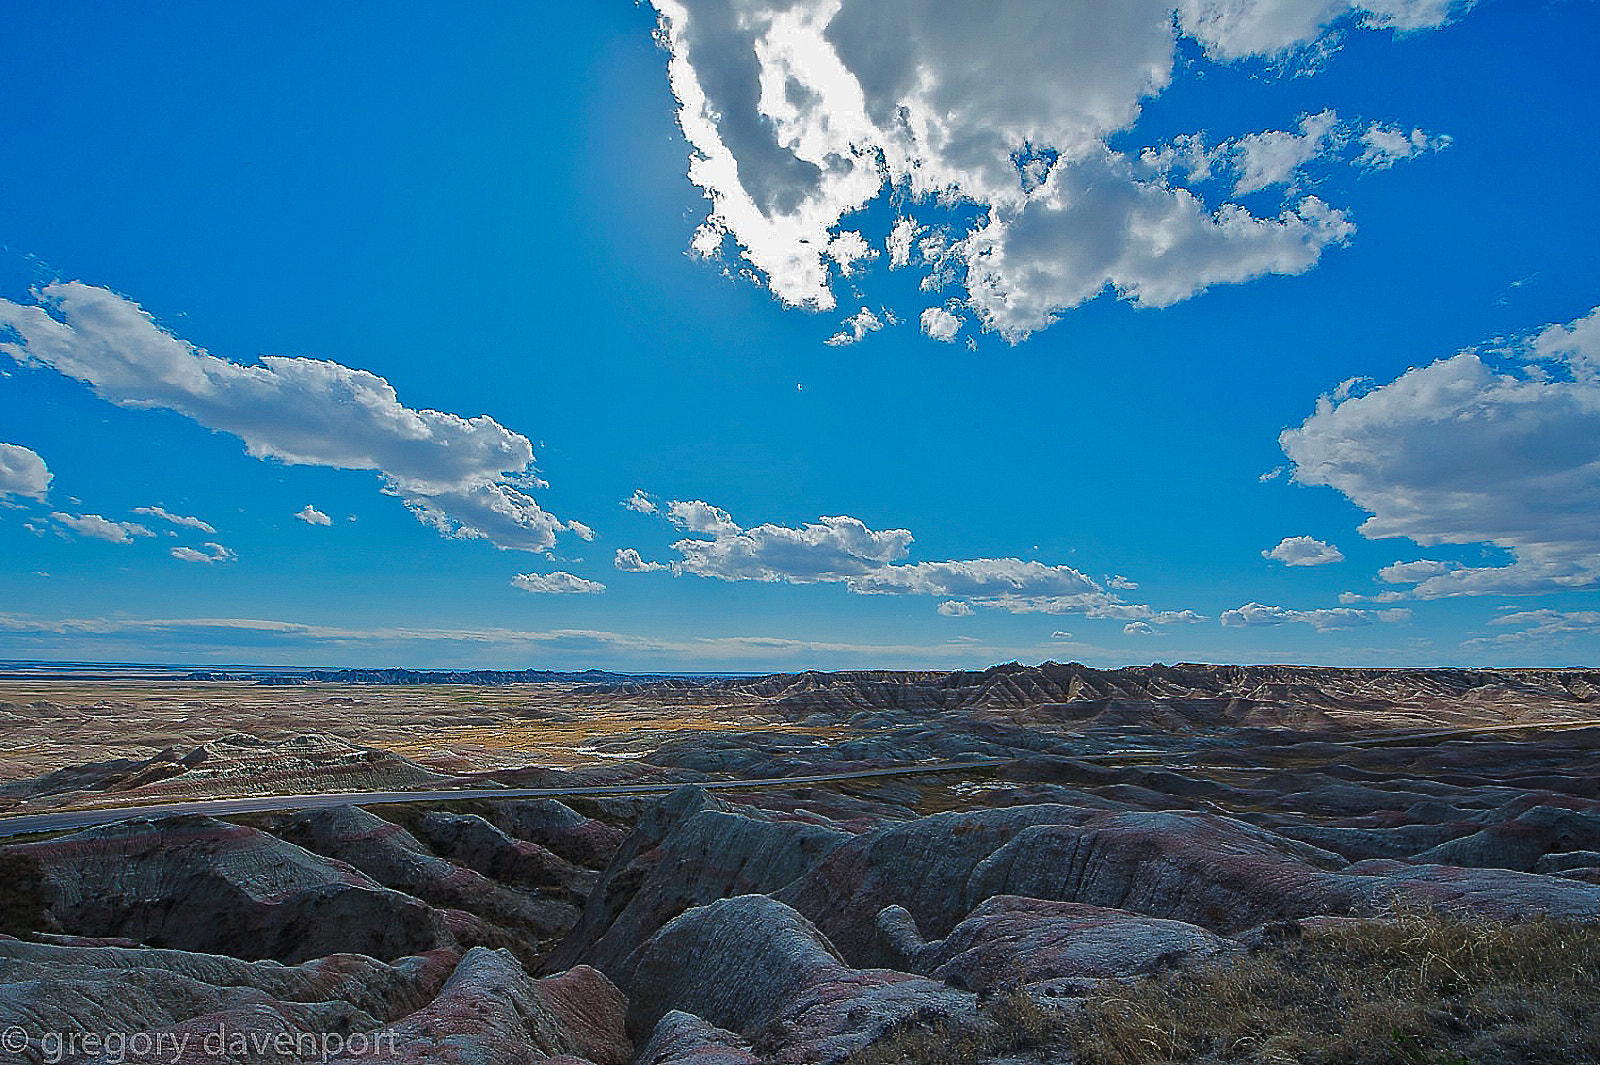 Photograph Badlands, South Dakota by Greg Davenport on 500px